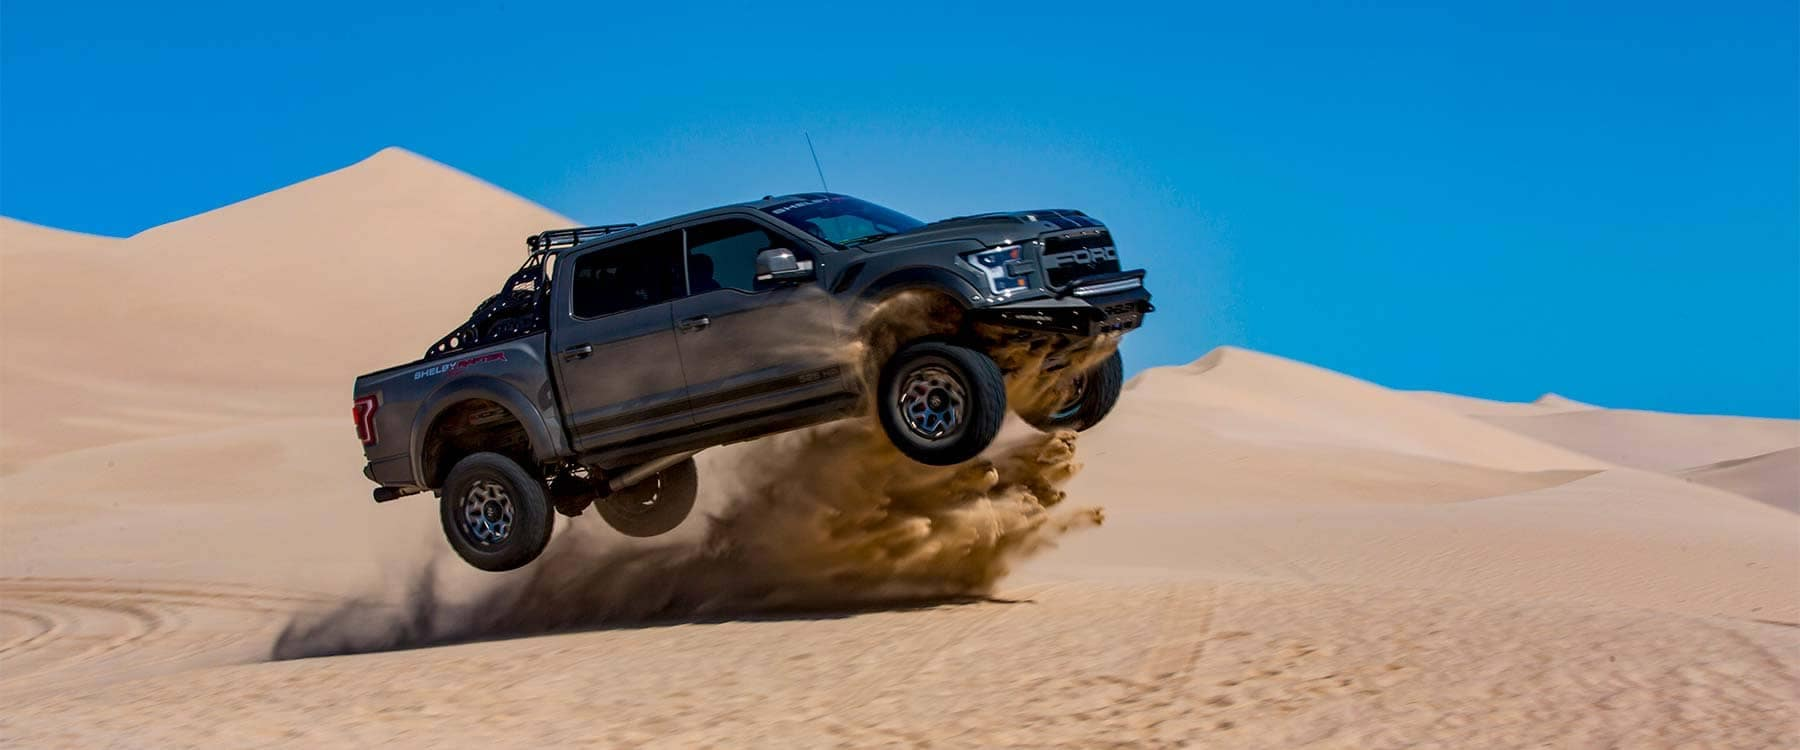 2018 Ford Tuscany Shelby Baja Raptor Slider